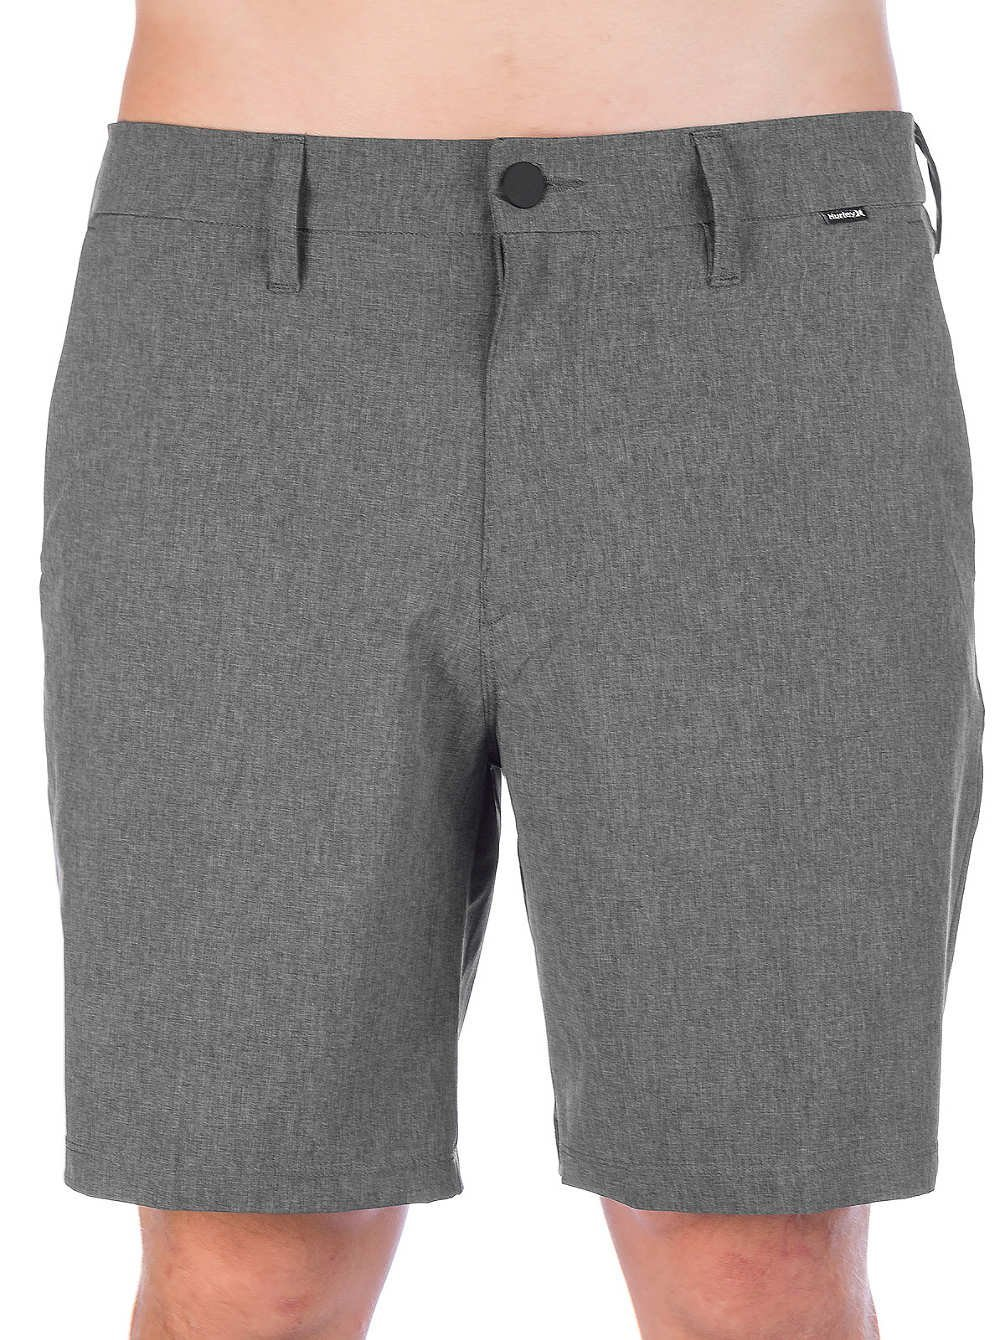 Hurley Phantom 18 inch Walkshort 032-Black-Heather 34